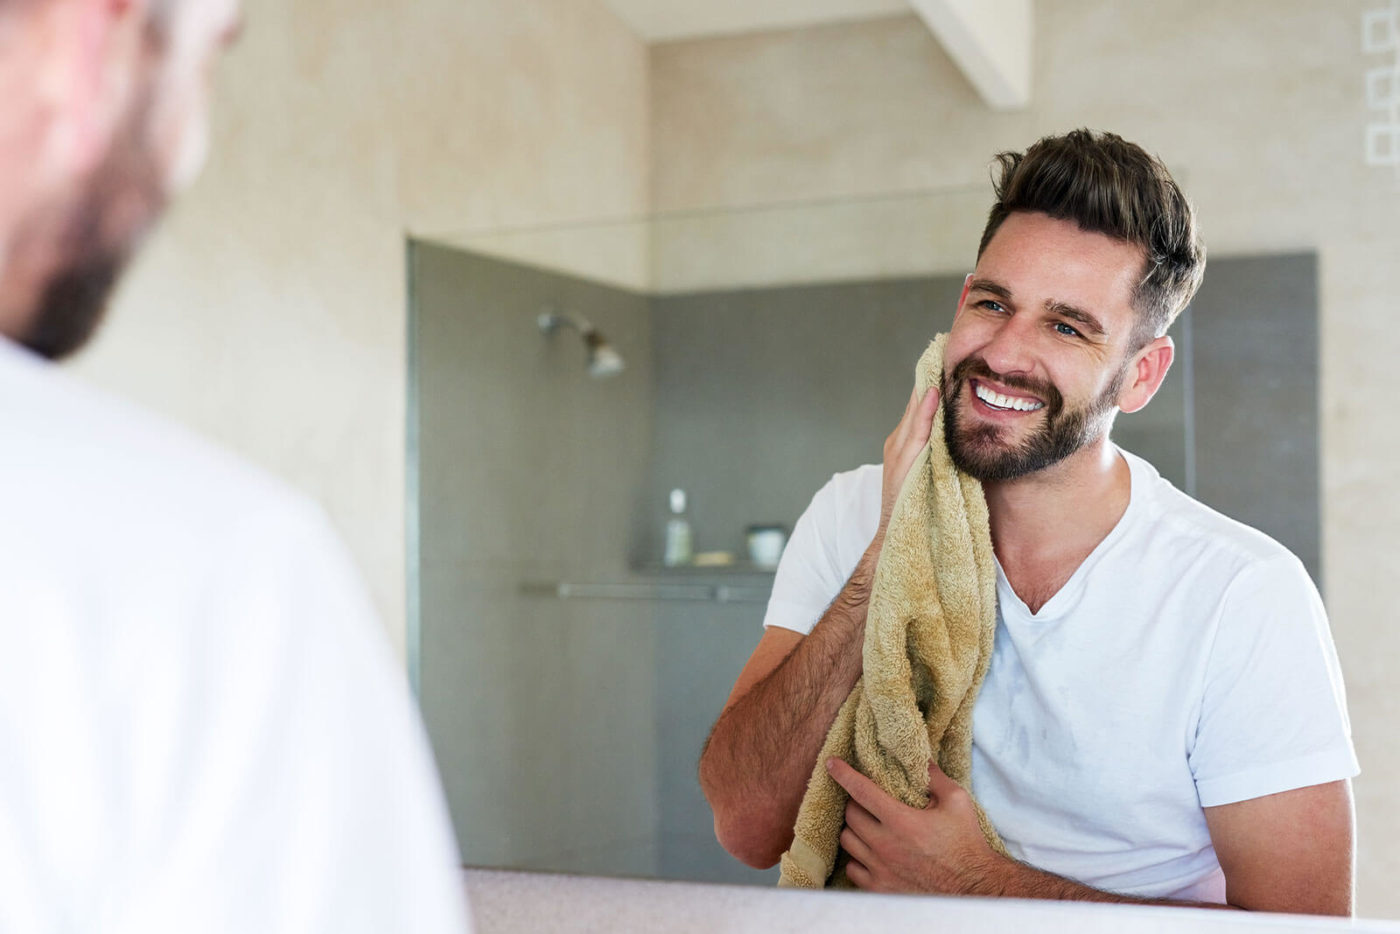 Smiling man with bead is drying his face with a soft towel